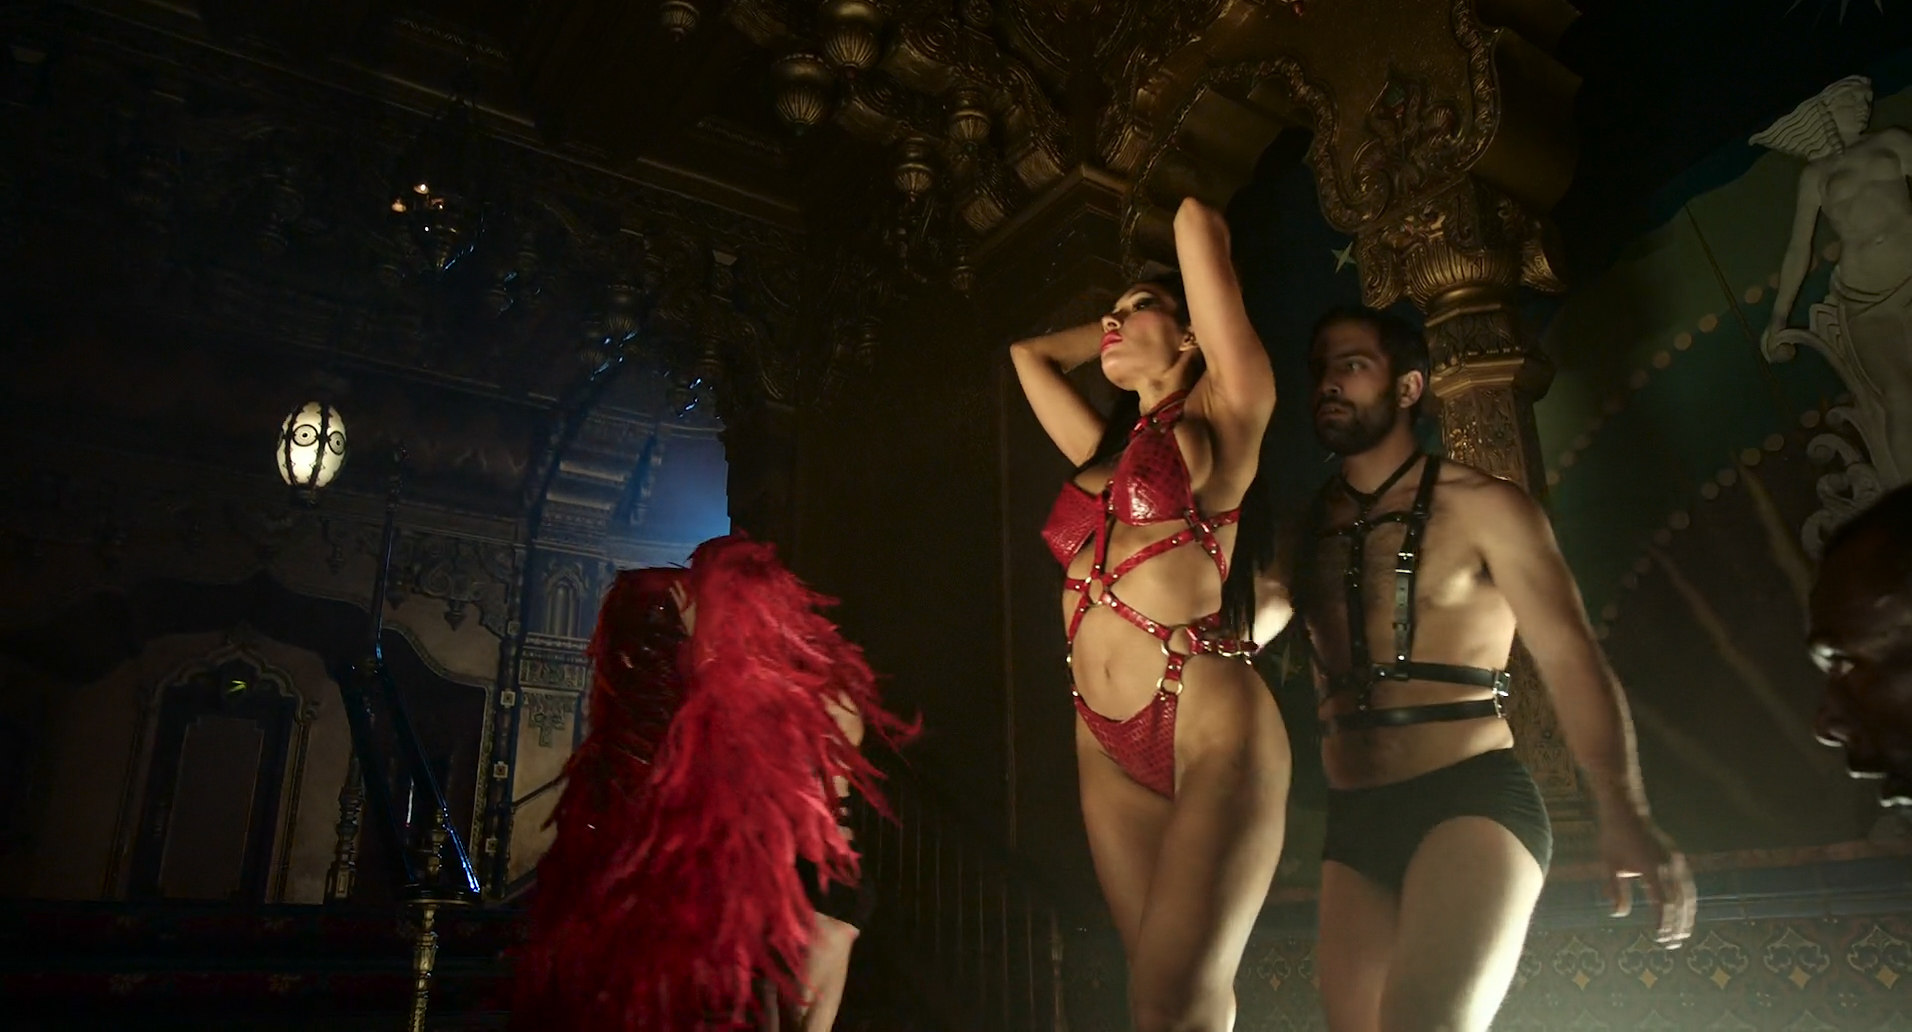 Ashley Greene hot dominatrix Alexis Knapp sexy other's hot and nude - Urge (2016) HD 1080p (11)